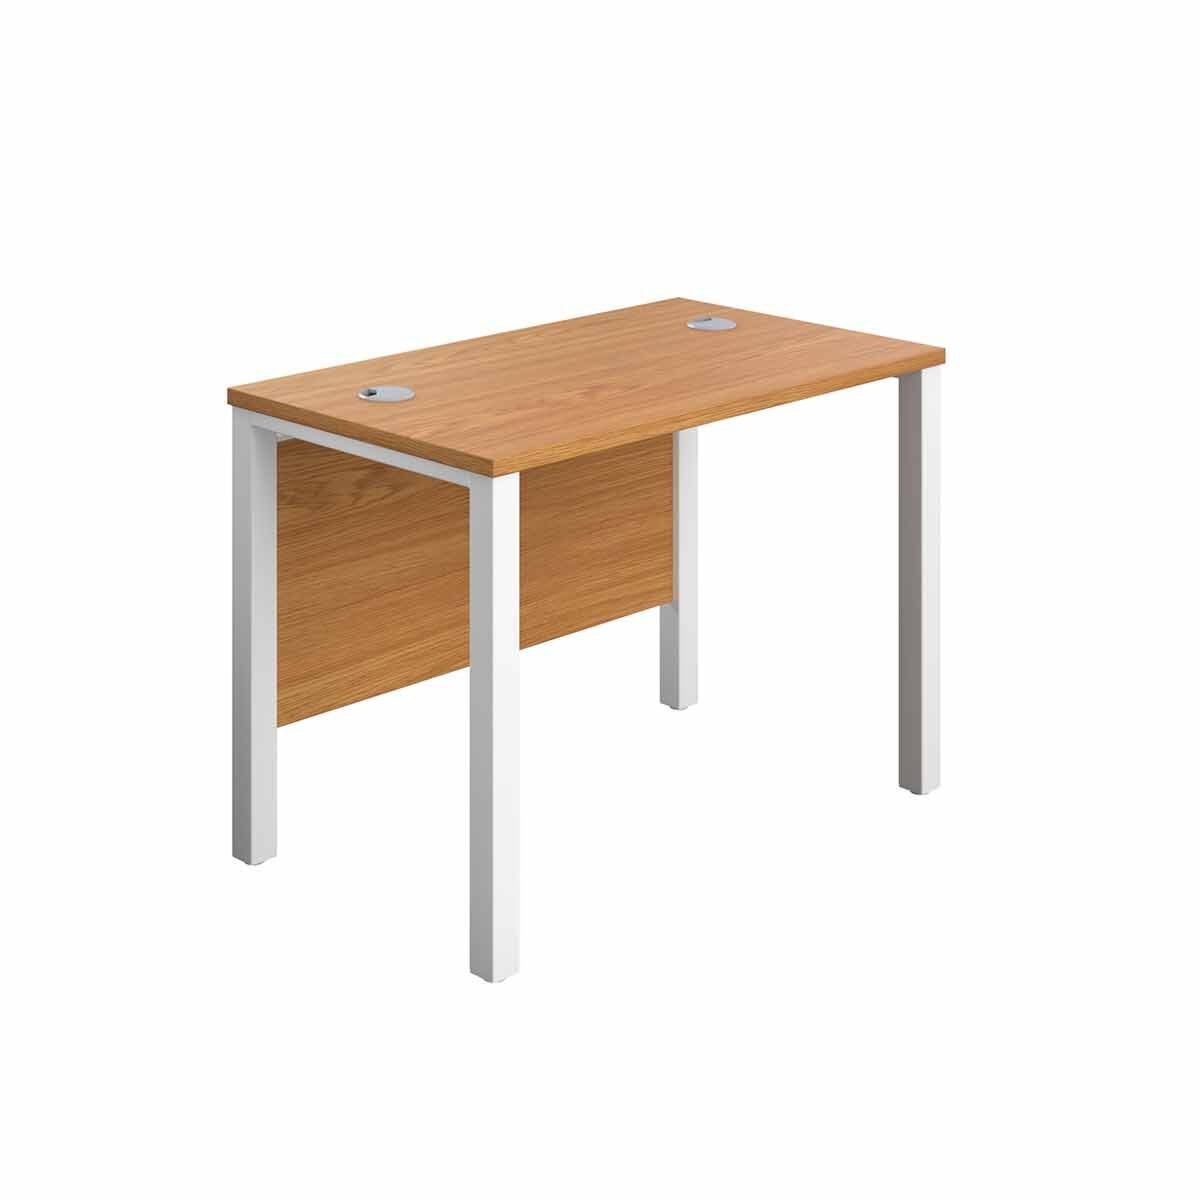 TC Office White Goal Post Rectangular Desk 100cm Oak